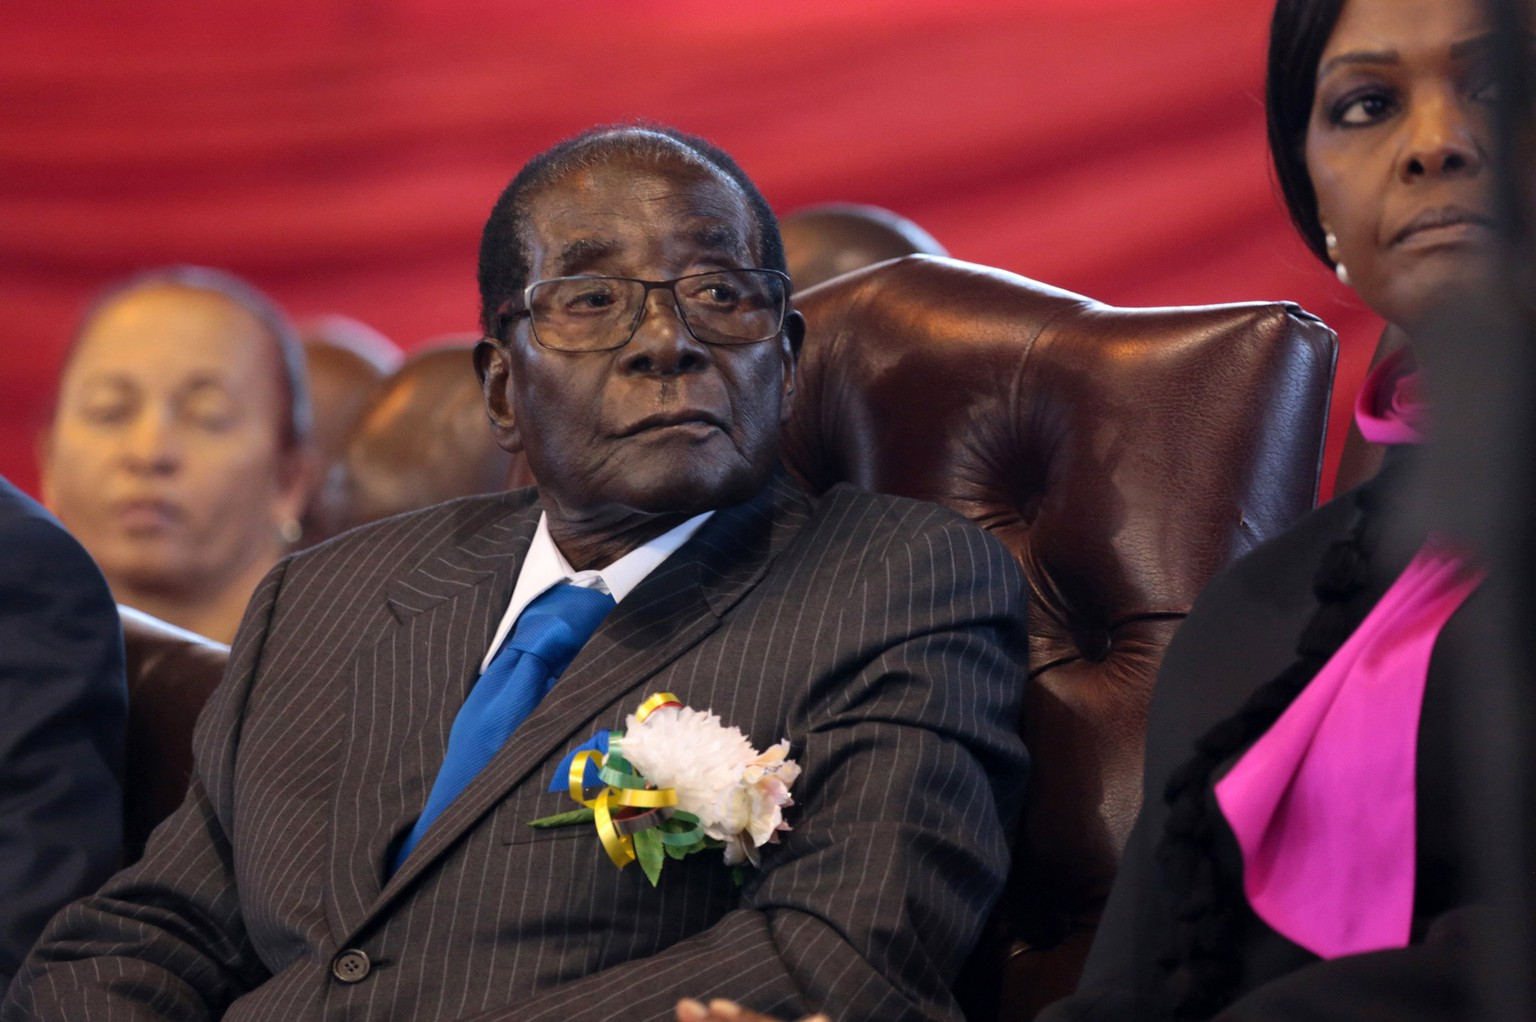 epa06342296 (FILE) - Zimbabwean President Robert Mugabe (C) follows the proceedings of the Day of The African Child at the City Sports Centre in Harare, Zimbabwe, 17 June 2017  (reissued 21 November 2017). Zimbabwe's parliamentary speaker on 21 November said Mugabe has resigned as President.  EPA/AARON UFUMELI *** Local Caption *** 53590607